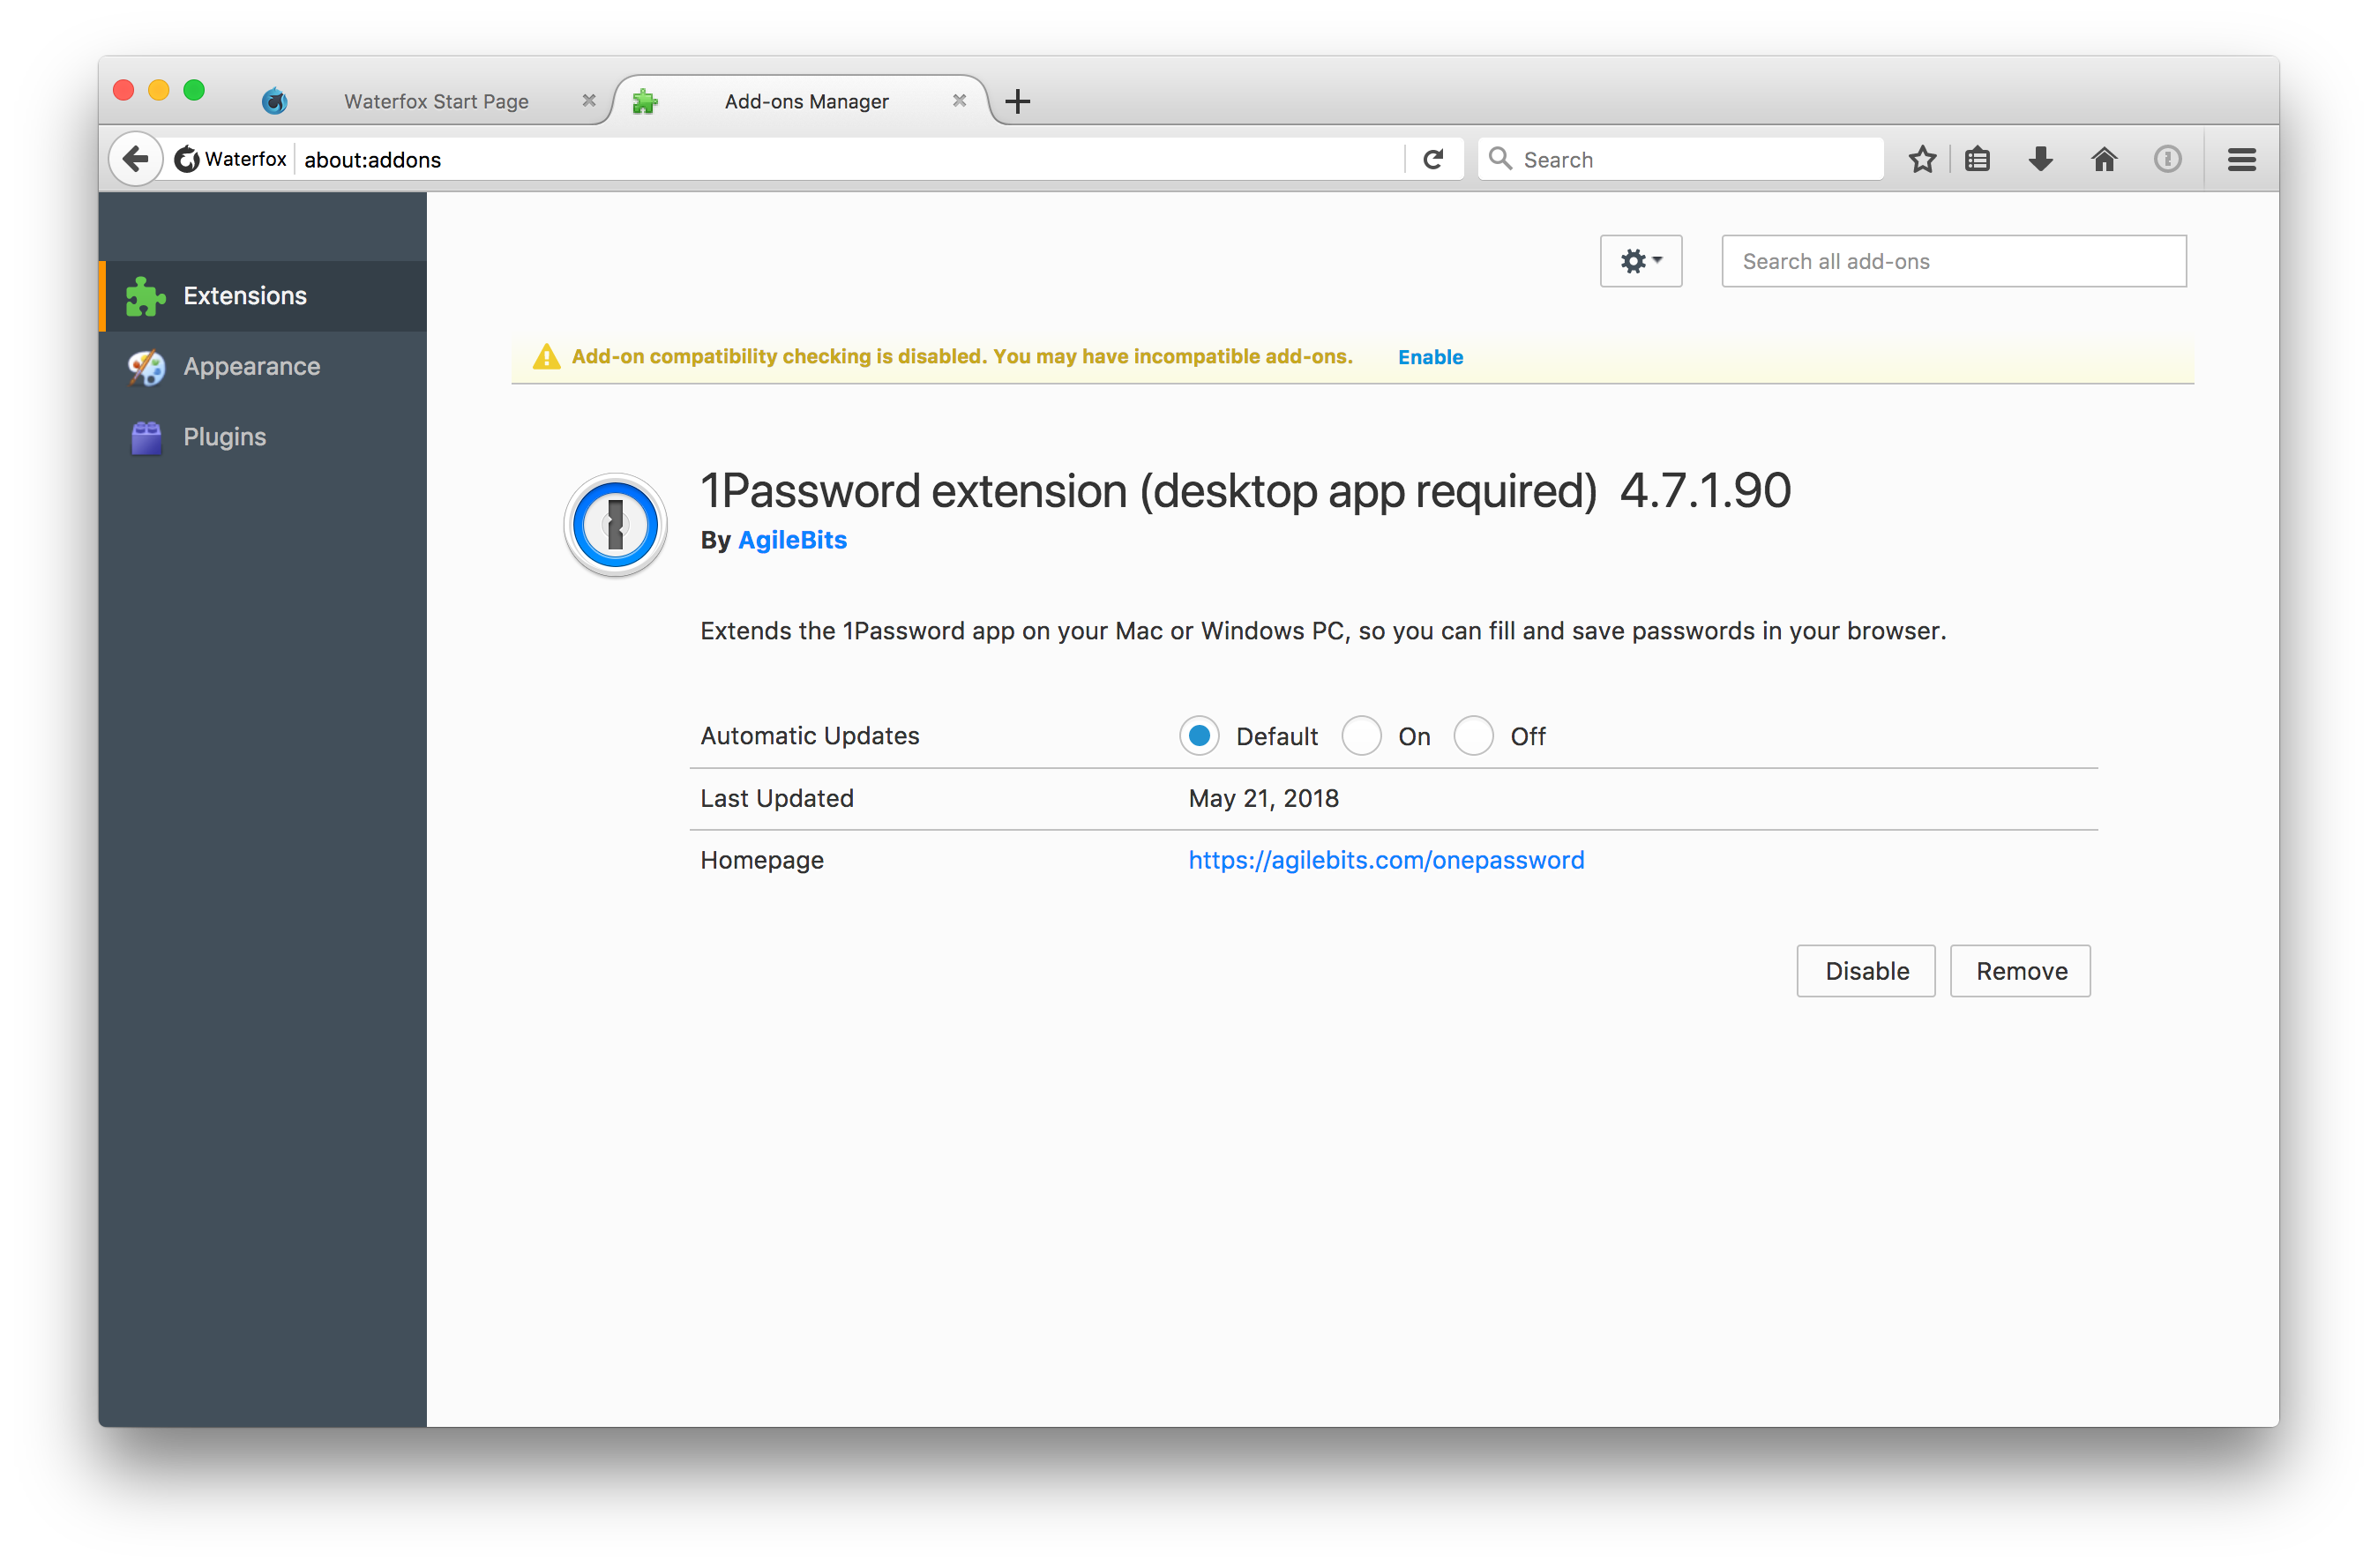 Request of supporting 1Password extension · Issue #576